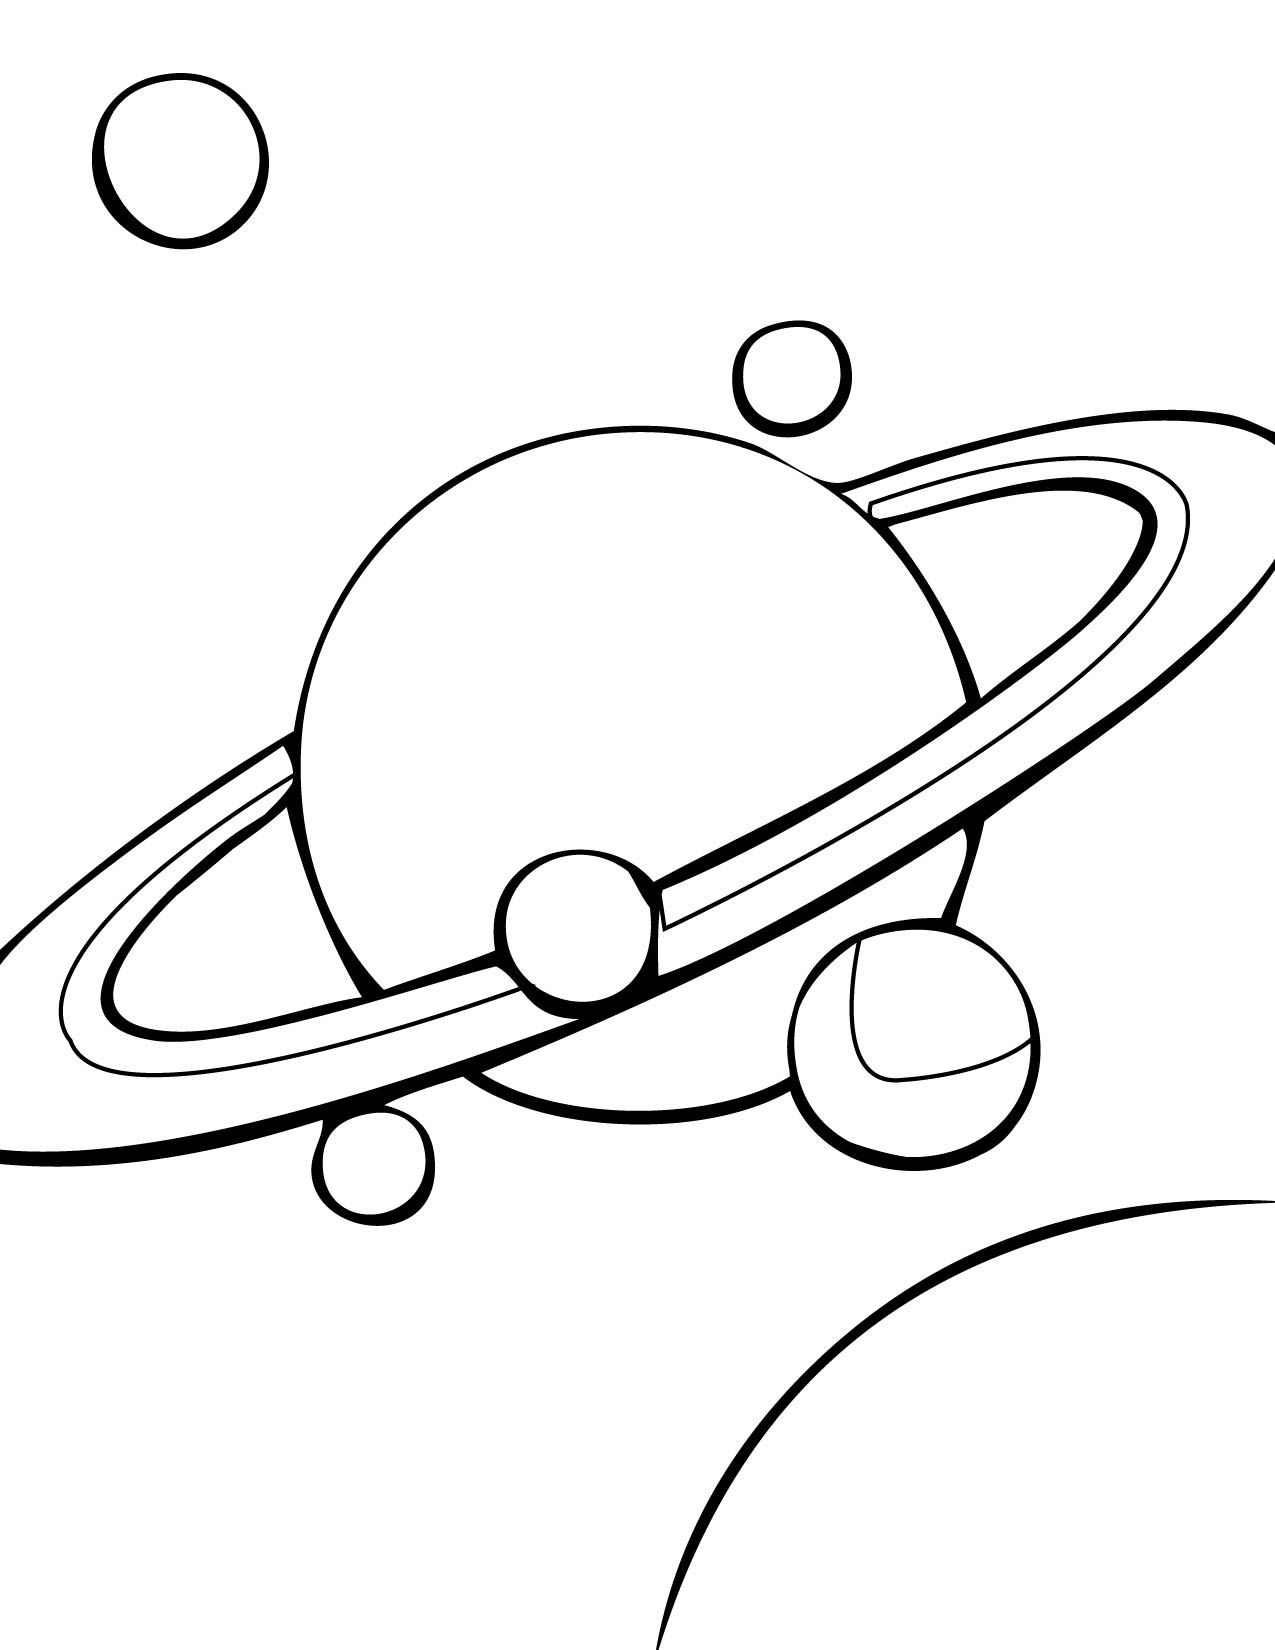 Solar System Coloring Pages Solar System Coloring Sheets Free Solar